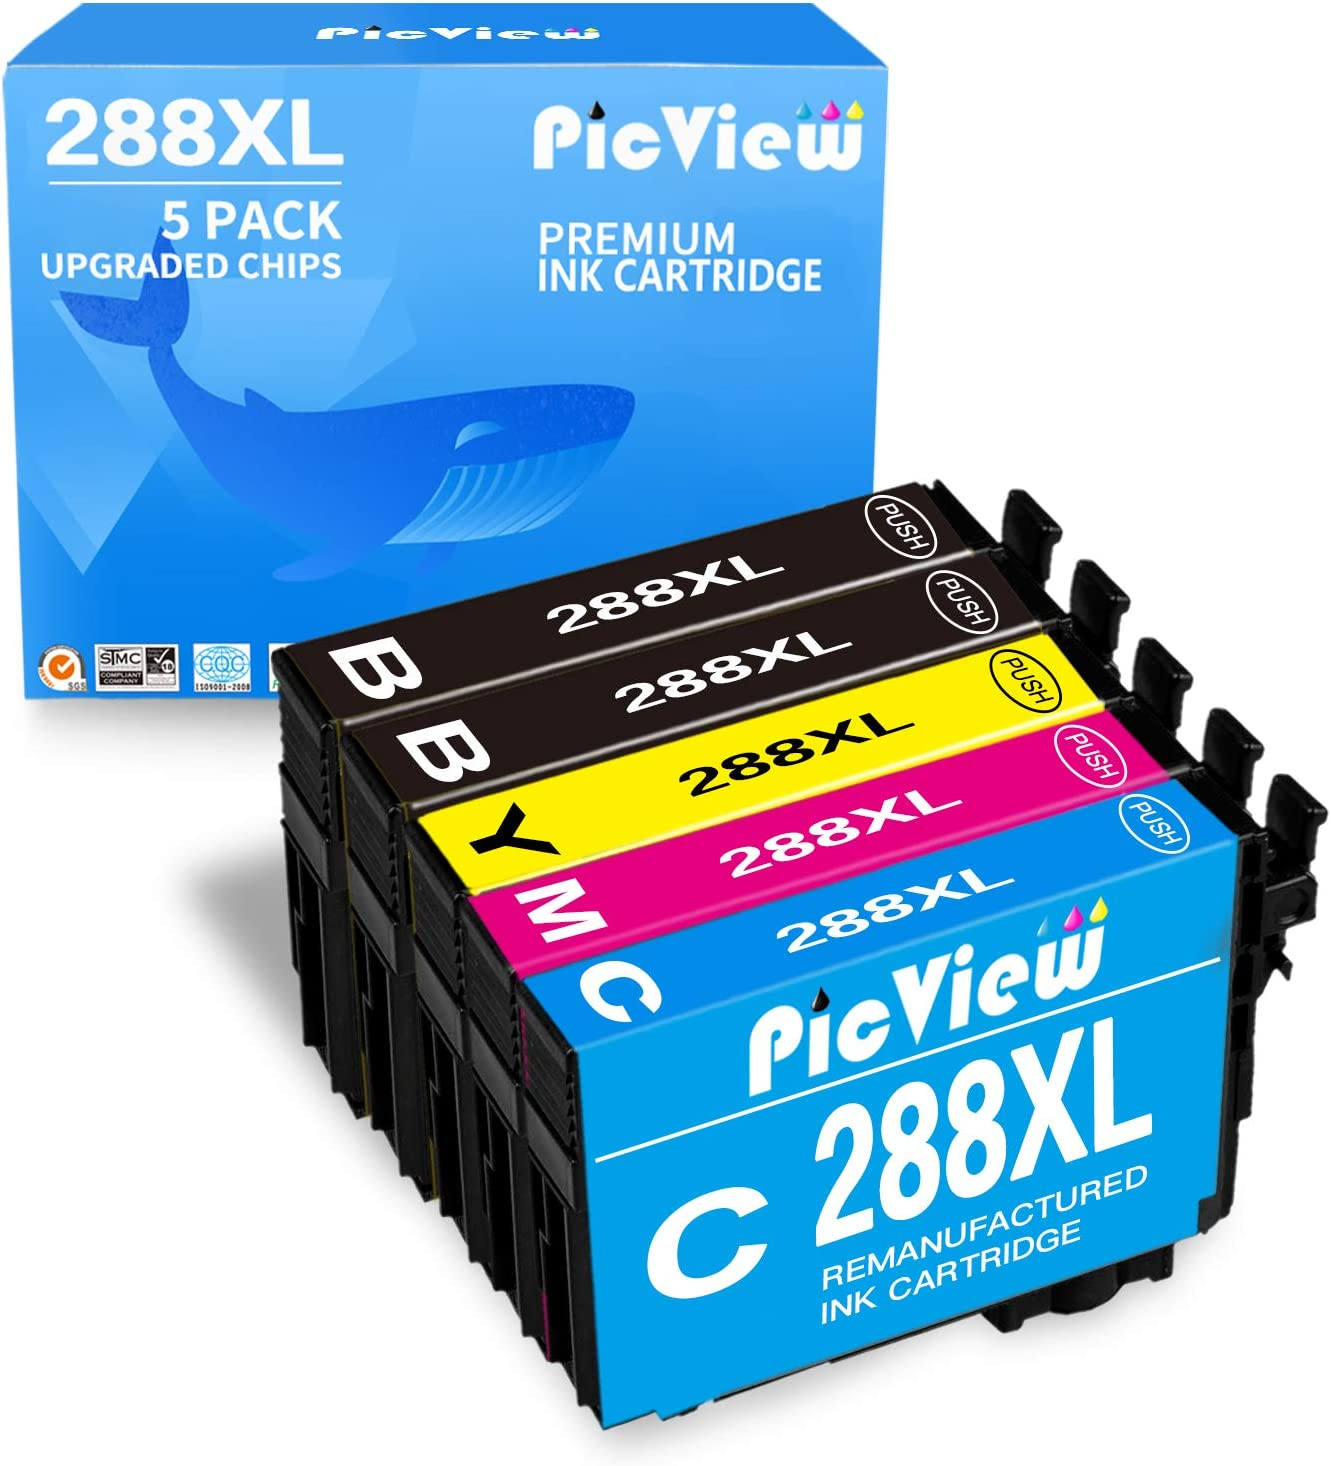 PicView Remanufactured 288 Ink Cartridge Replacement for Epson 288 XL 288XL T288XL for Expression Home XP-430 XP-340 XP-446 XP-440 XP-330 XP-434 Printer, 5 Pack (2 Black, 1 Cyan, 1 Yellow, 1 Magenta)